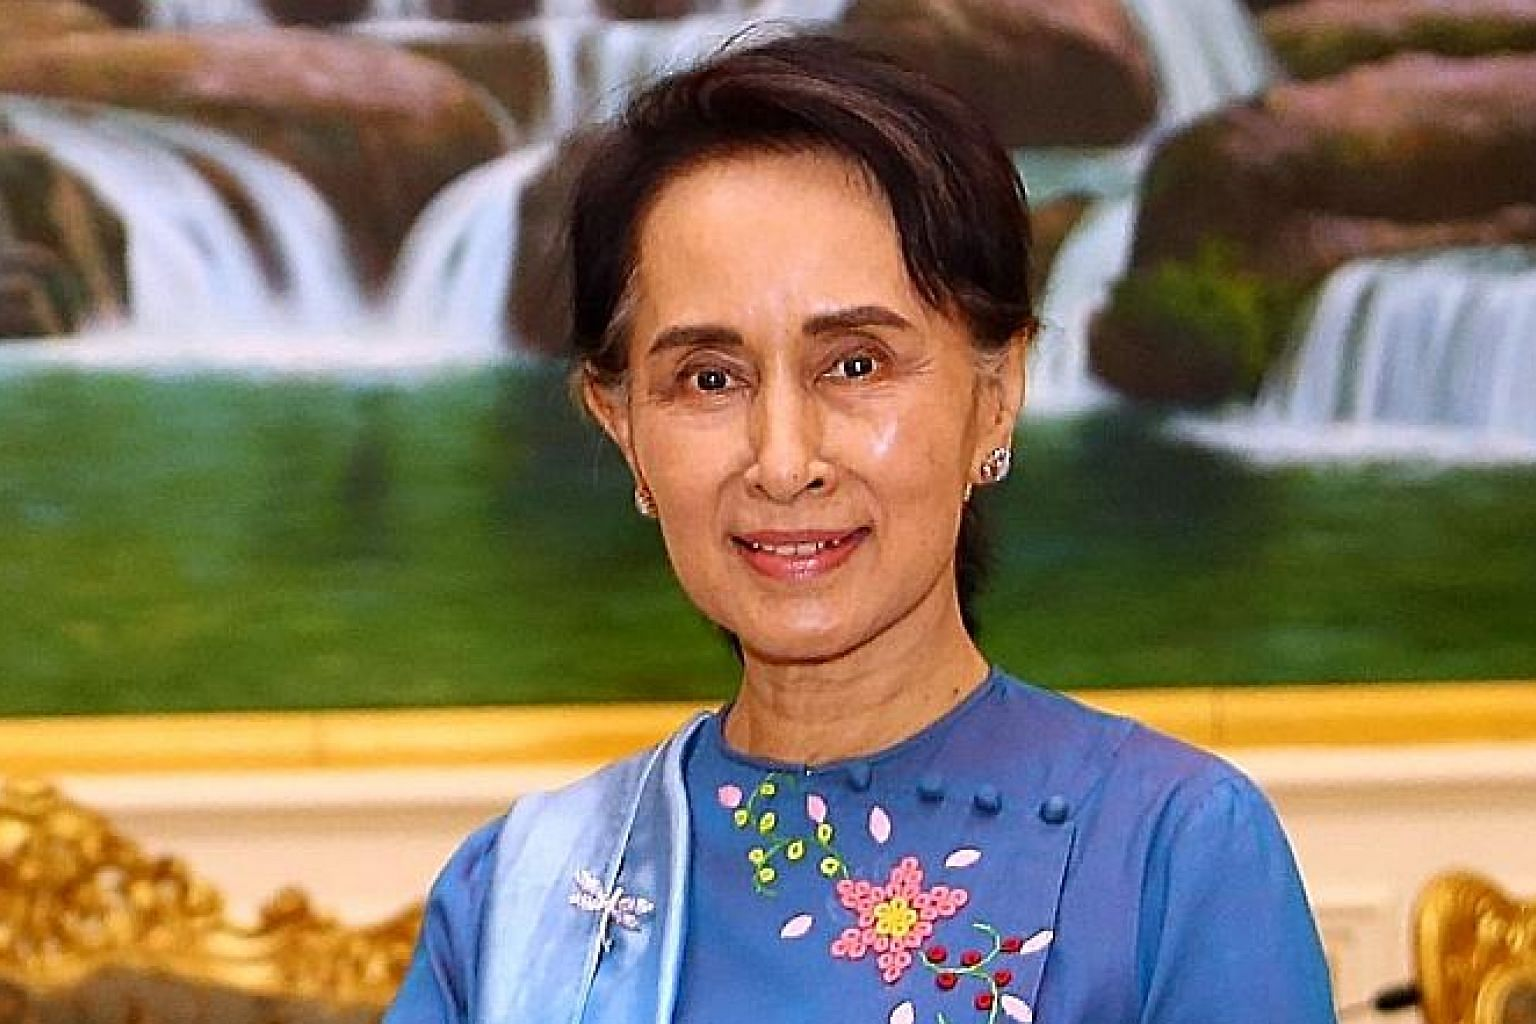 Ms Aung San Suu Kyi said patience and time are needed to restore trust between the communities.